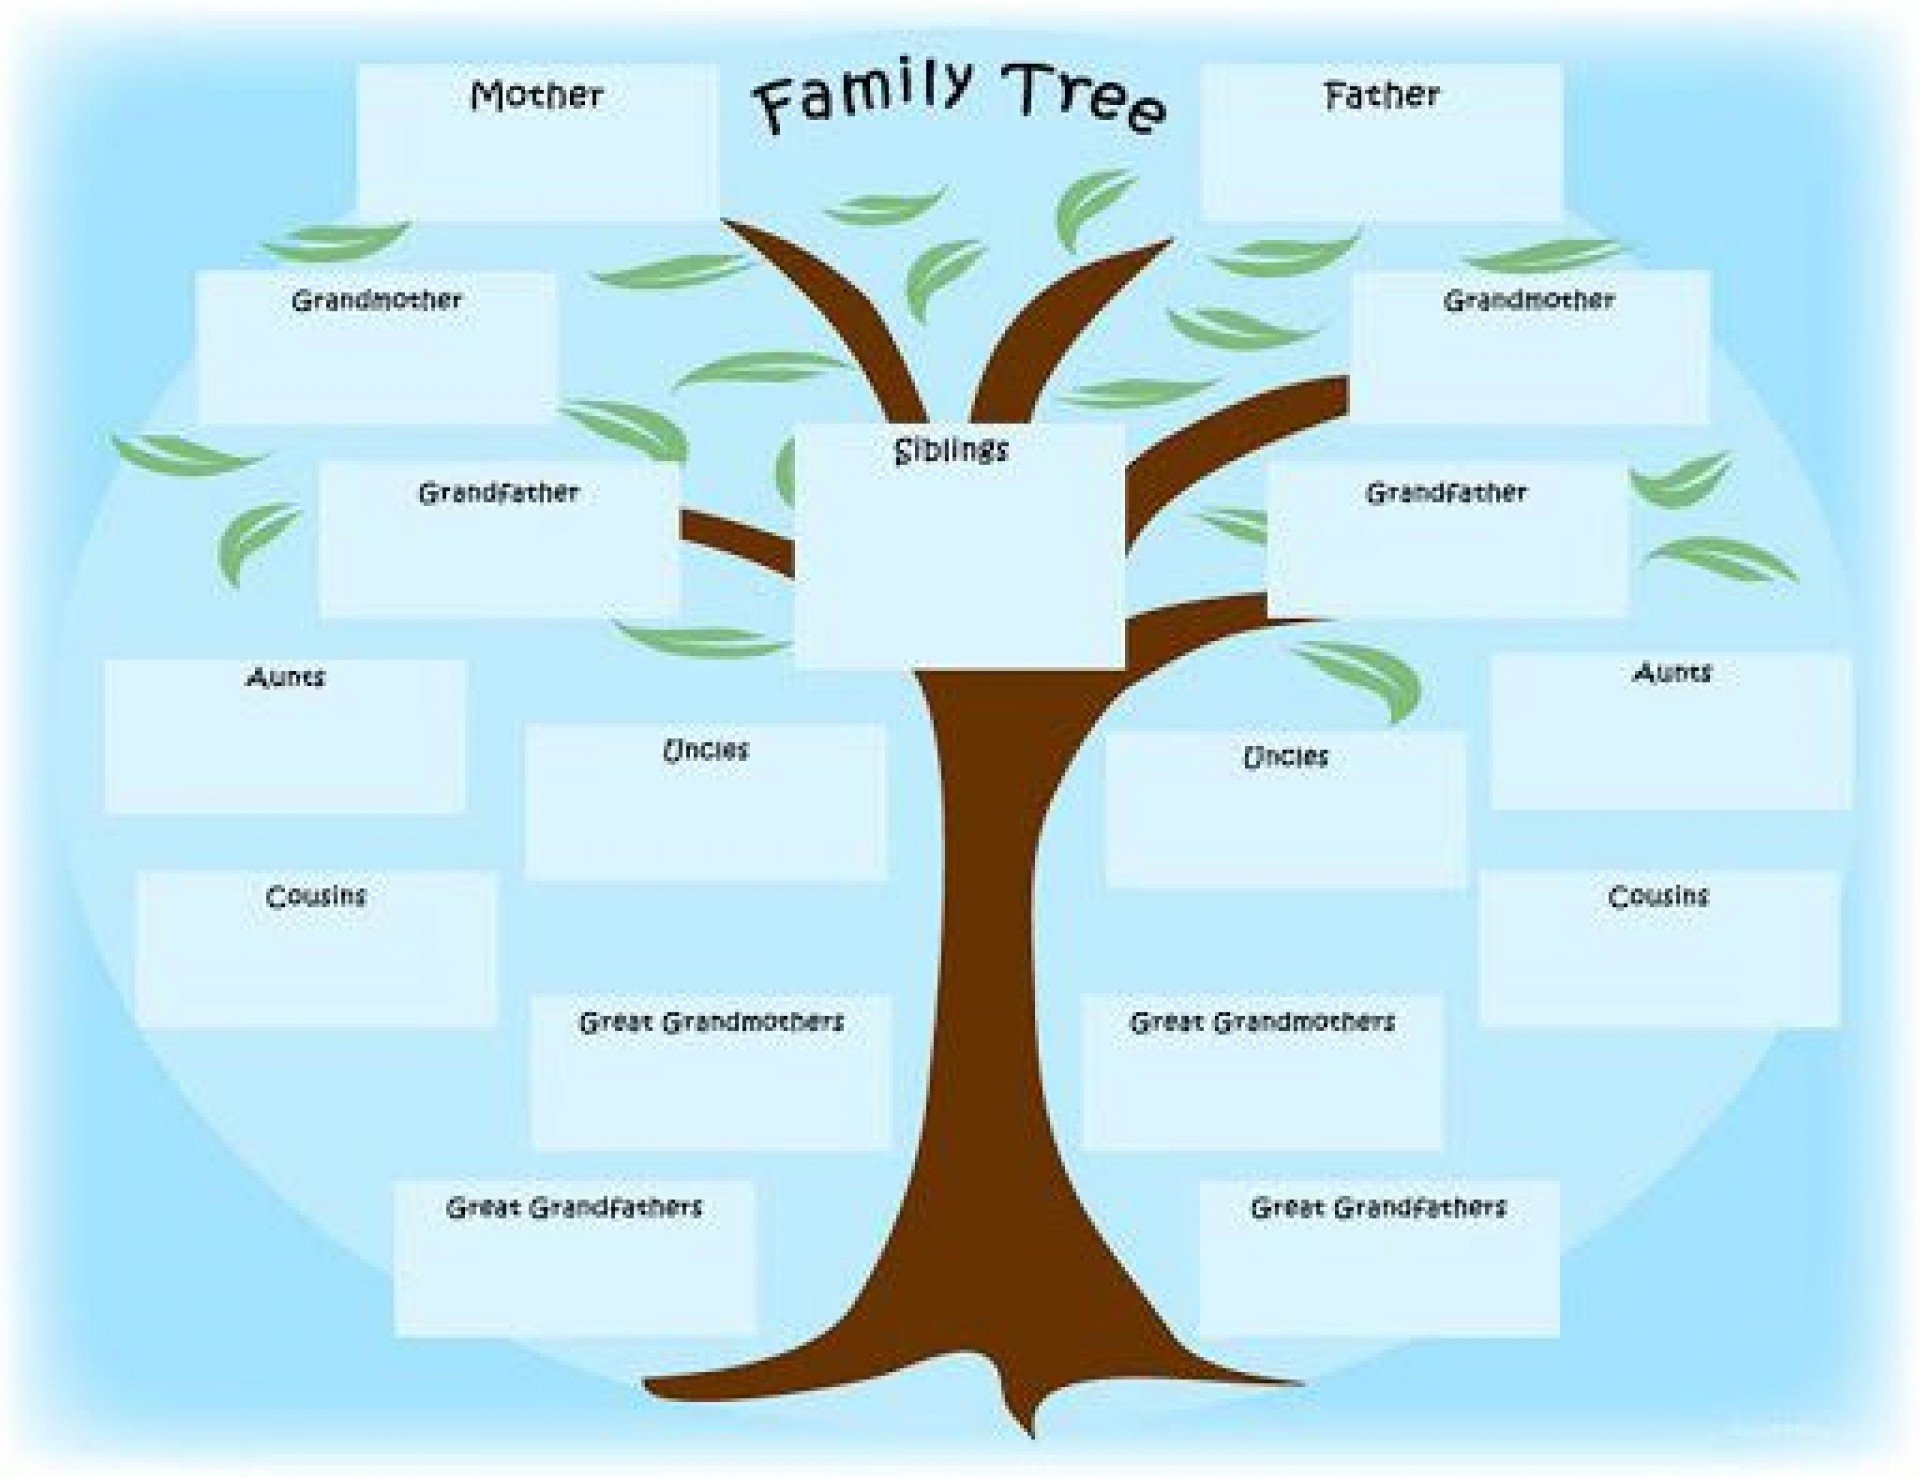 010 Fascinating Free Online Family Tree Chart Template Inspiration 1920